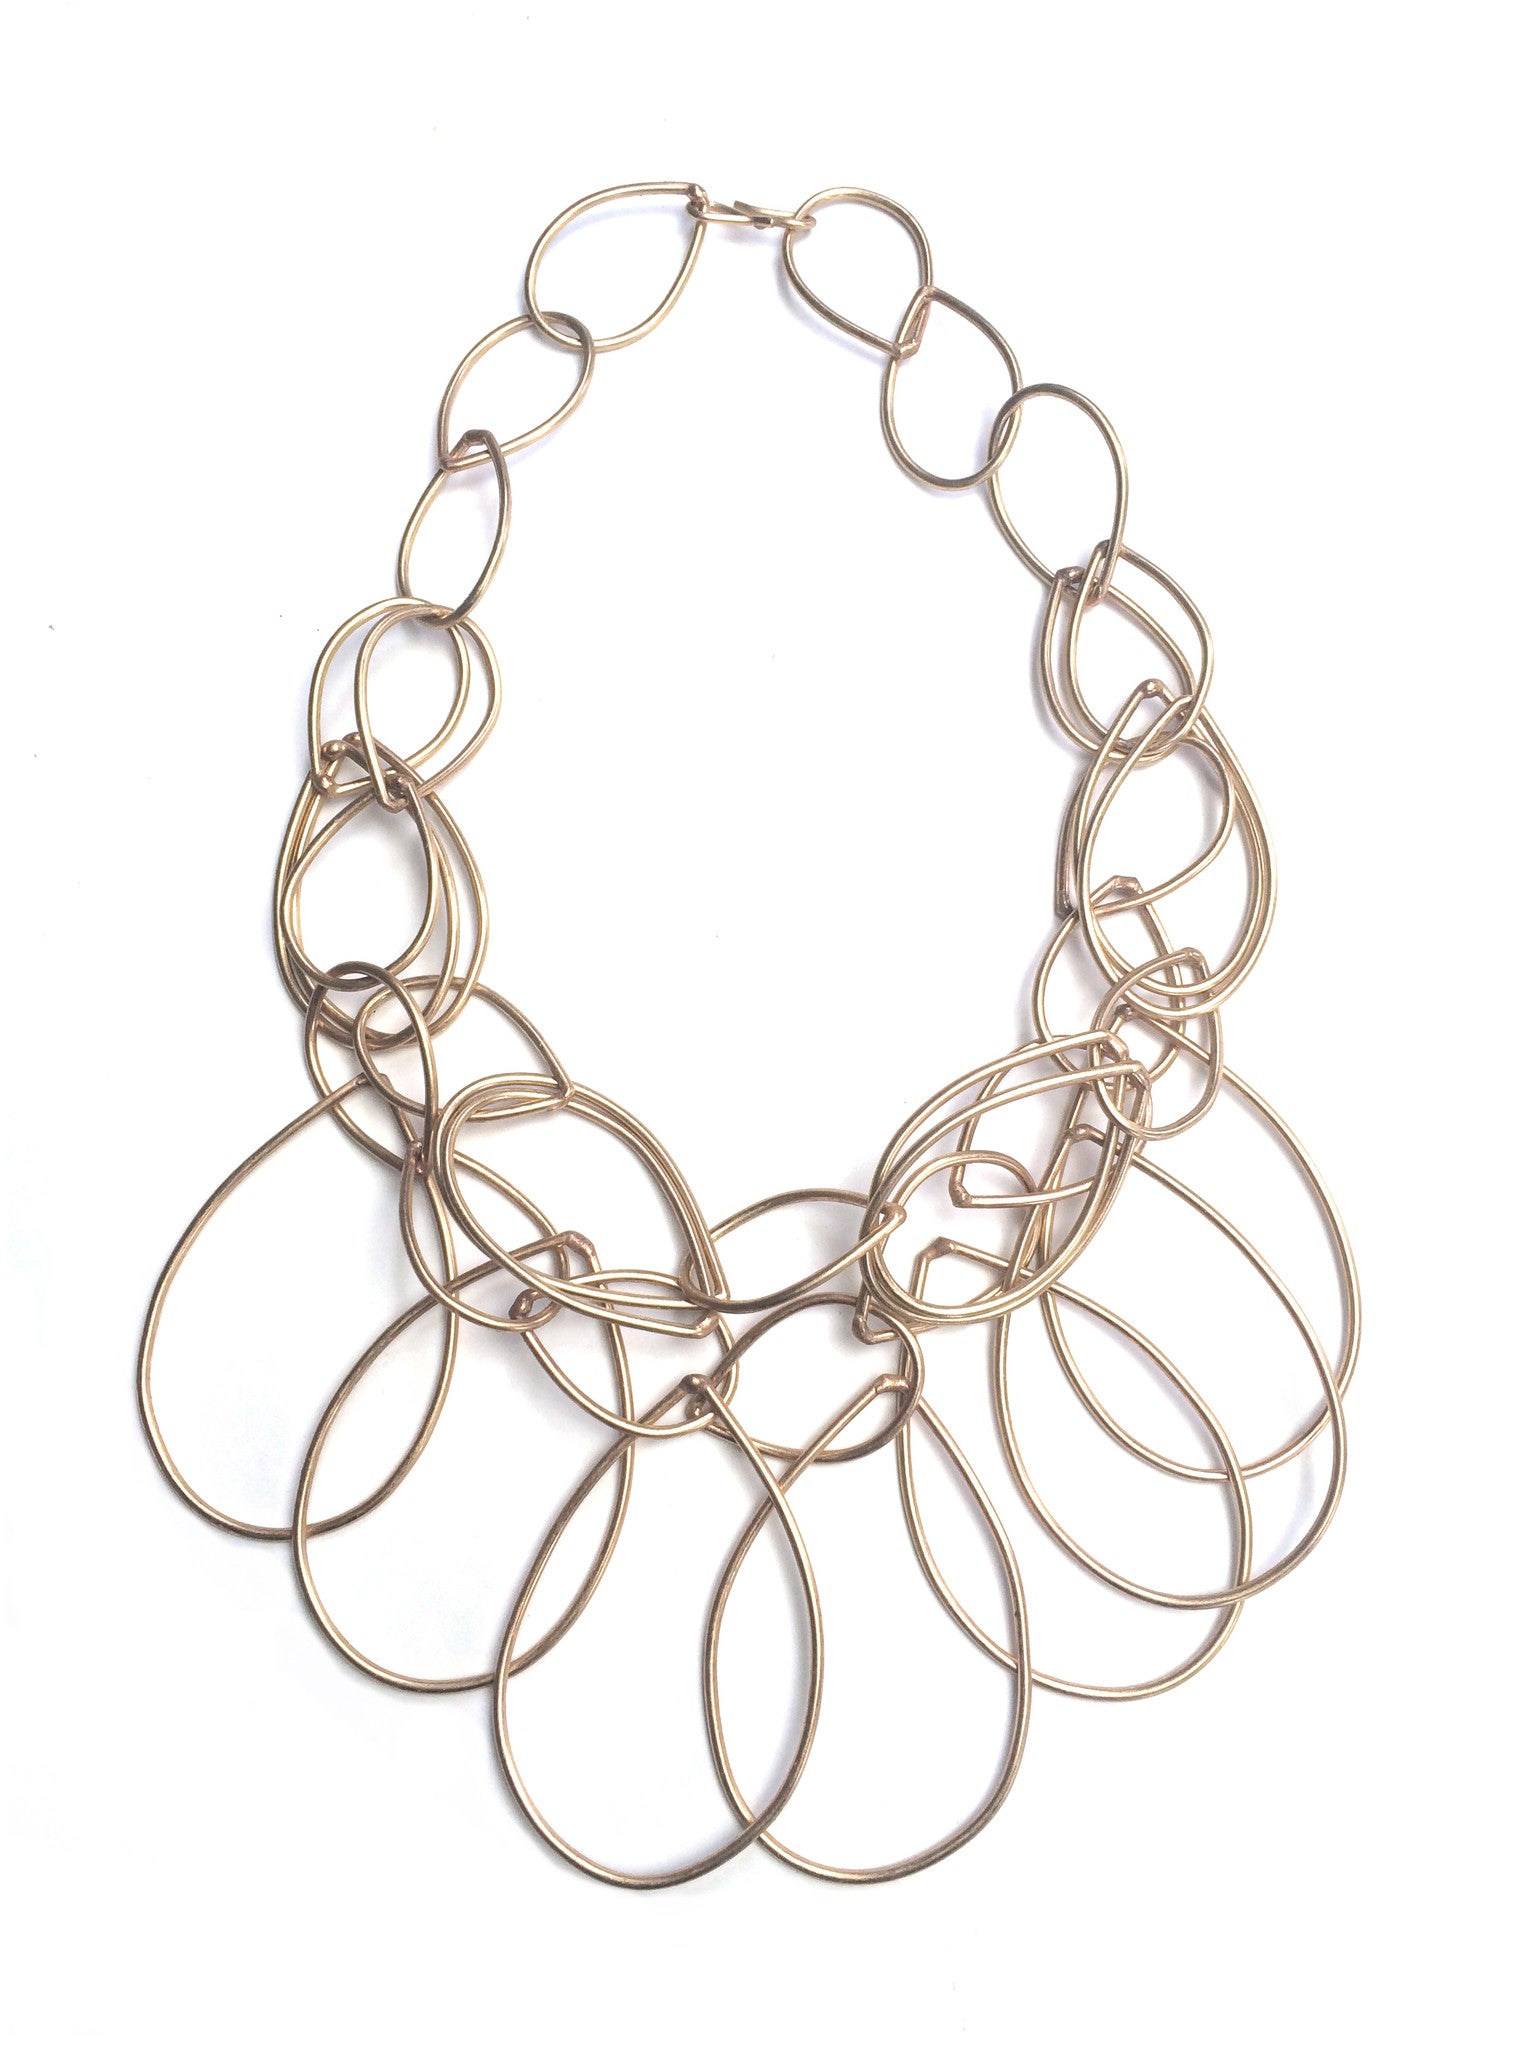 AM necklace - sample sale